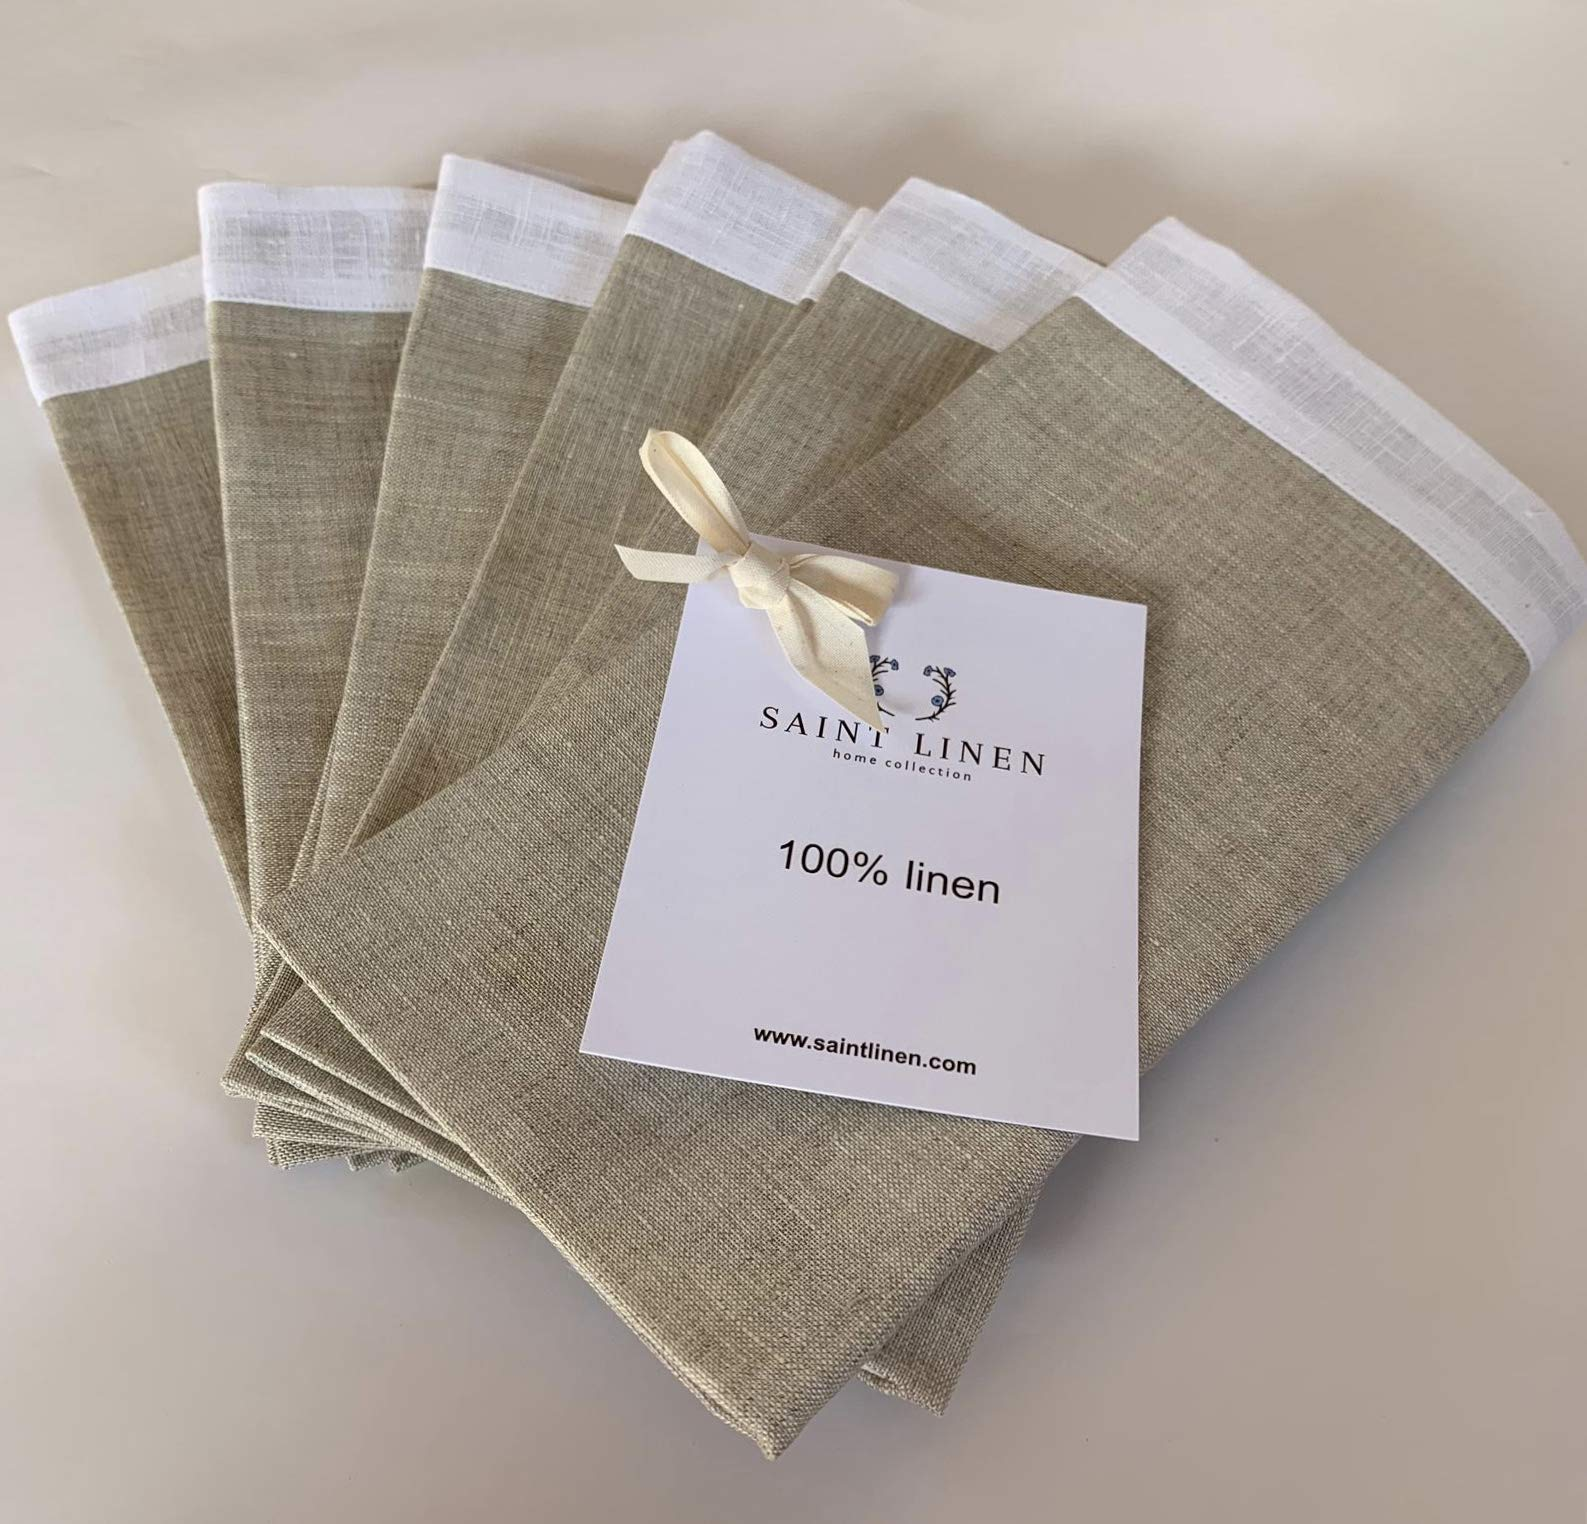 Saint Linen 100% Linen Dinner Napkins - Set of 6 - 18'' x 18'' White/Natural Fabric - Durable And Soft - European Flax -  For Events and Home use